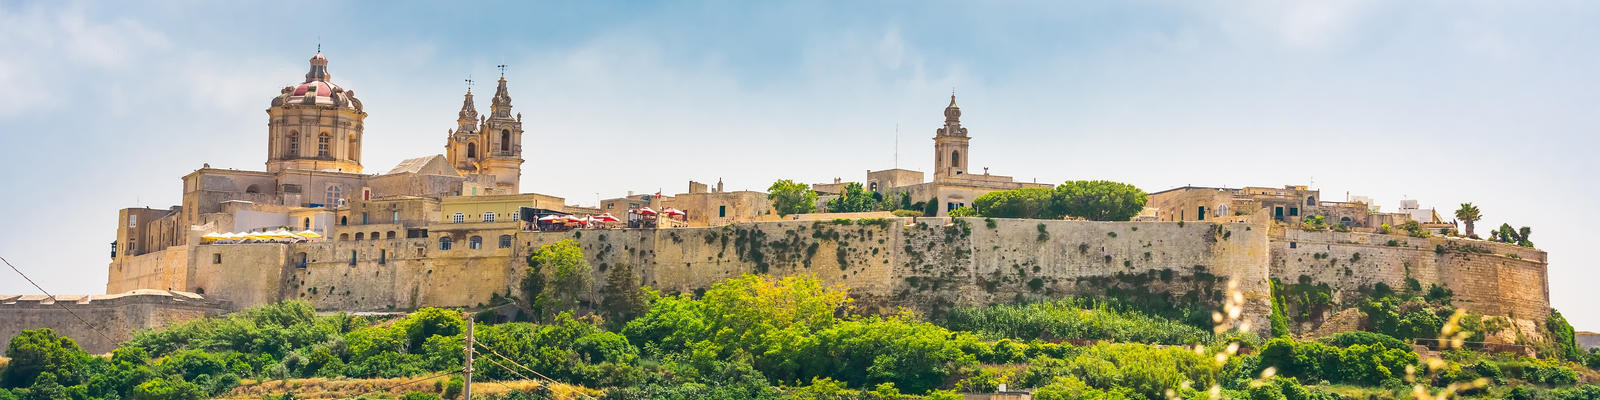 Photograph of the historic fortress city of Mdina in Malta, which served as the filming location for King's Landing in season one of Game of Thrones  Photography by In Green via Shutterstock)